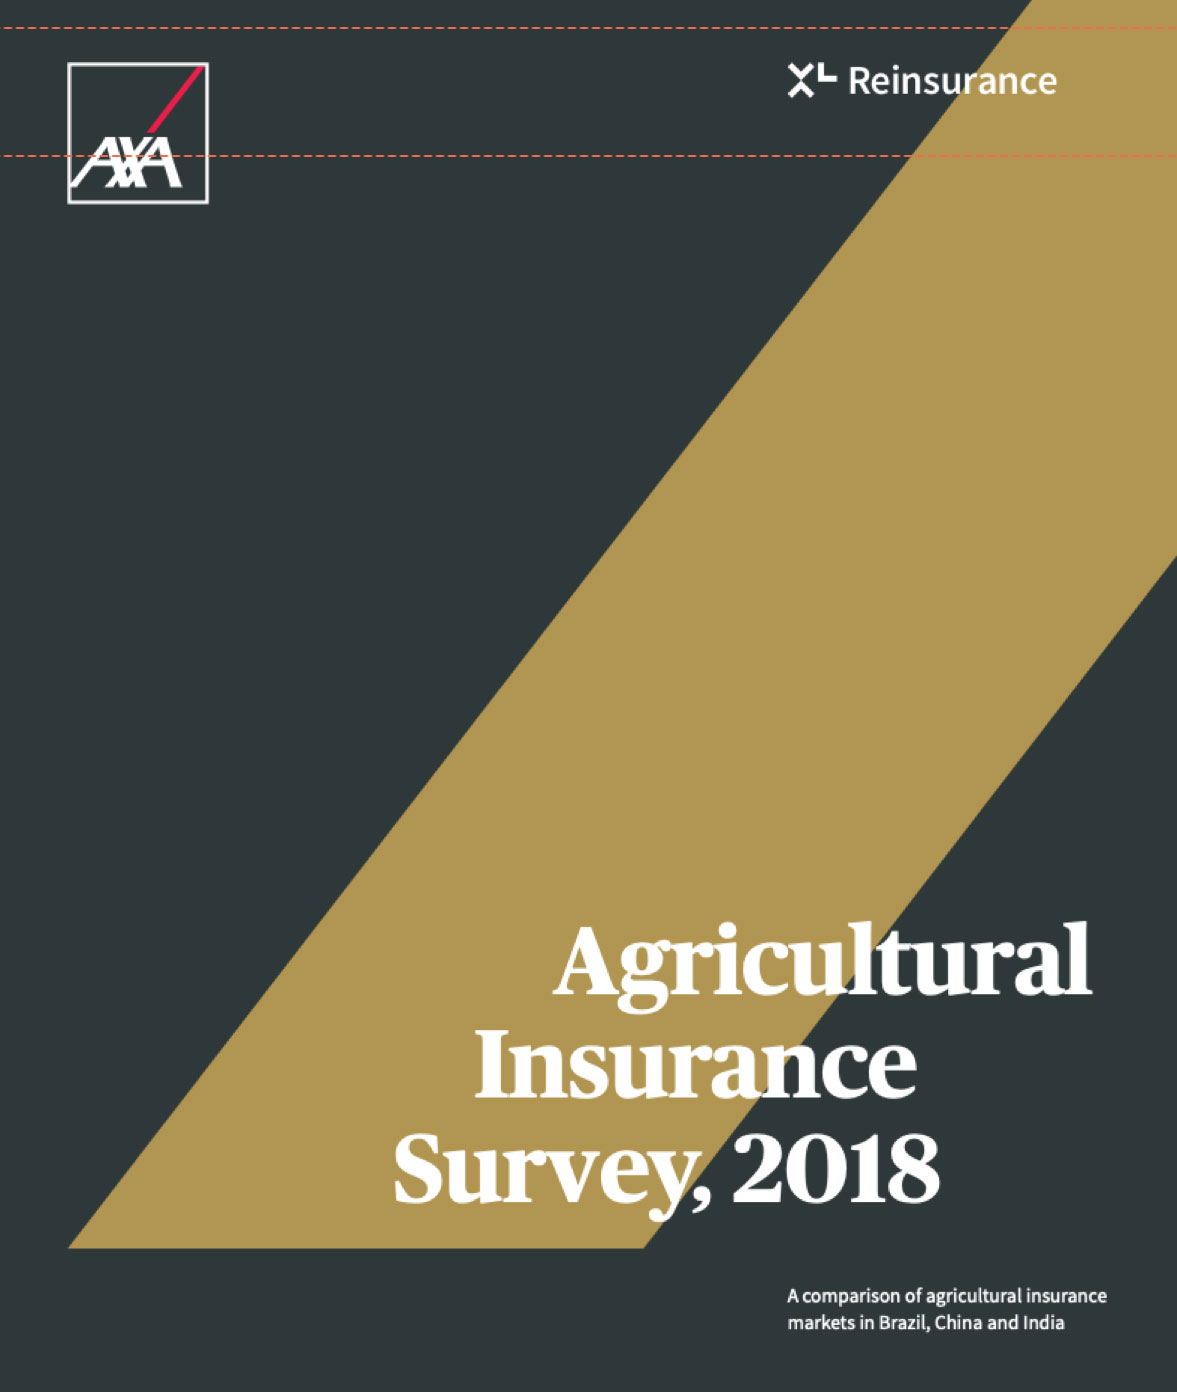 AXA XL – Agriculture Survey 2018